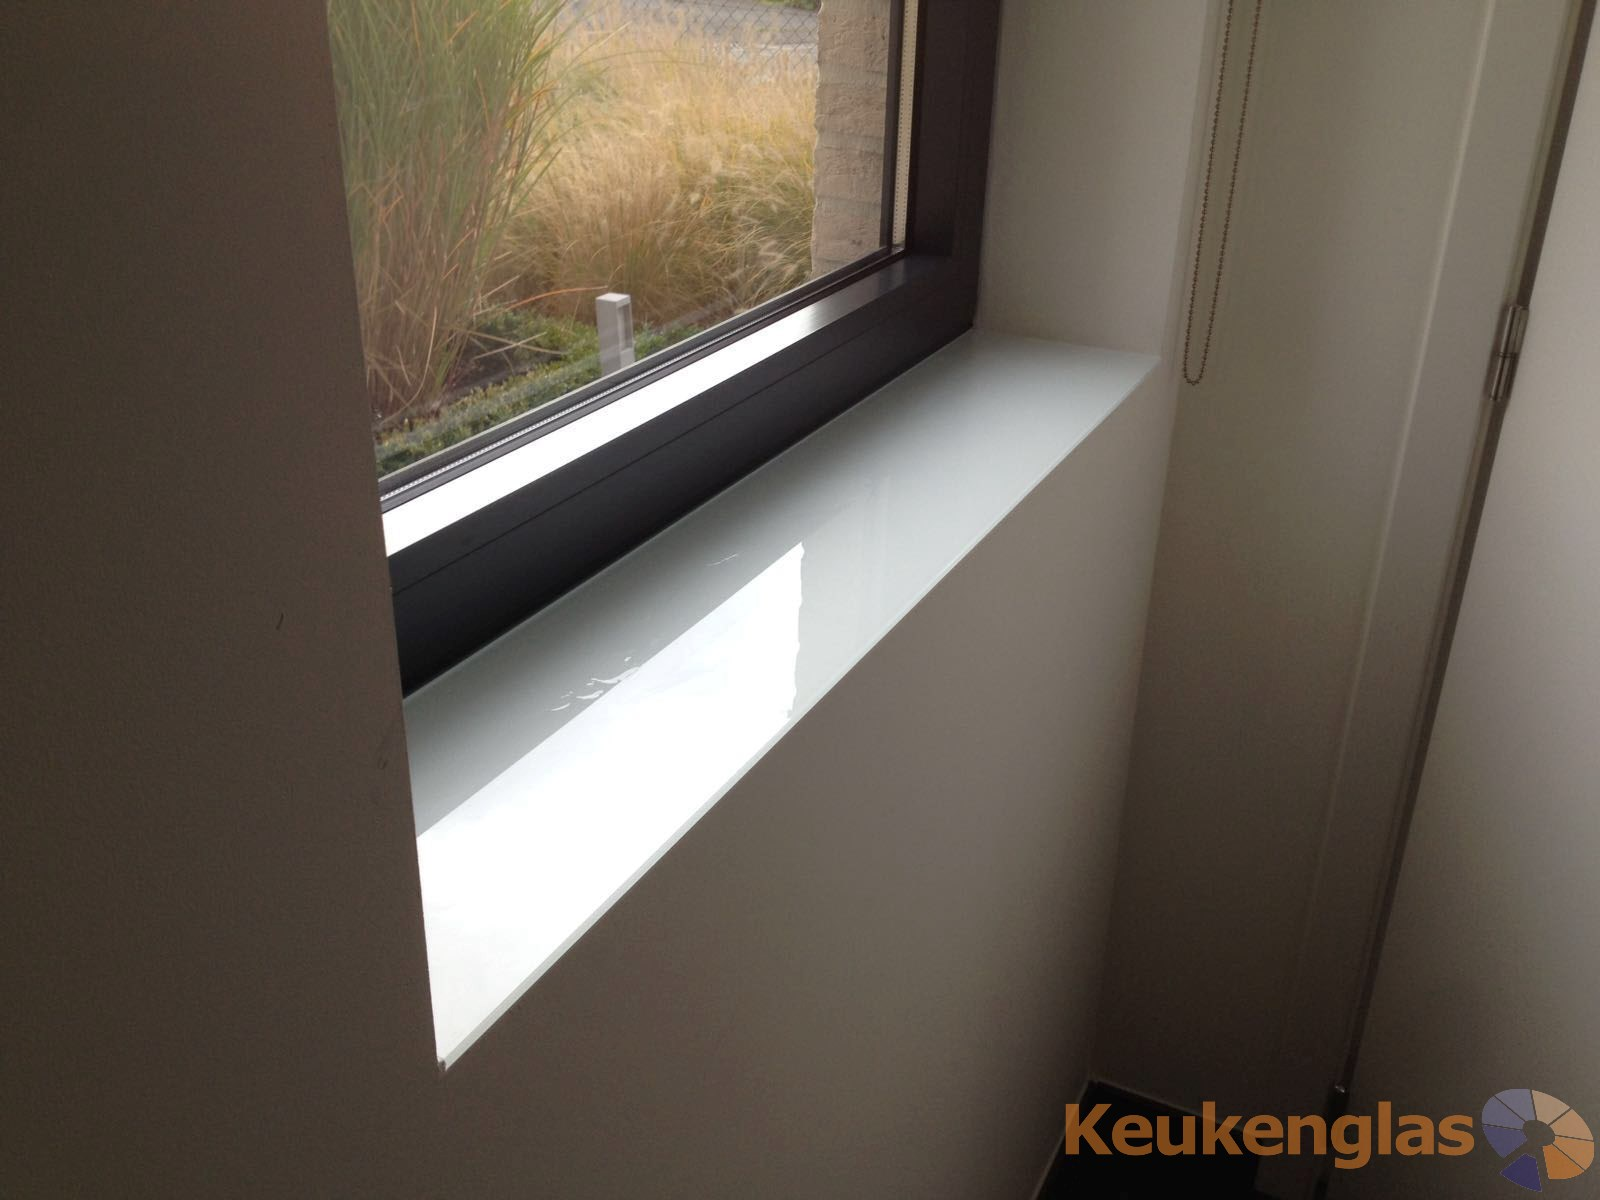 Vensterbank bekleed met wit glas